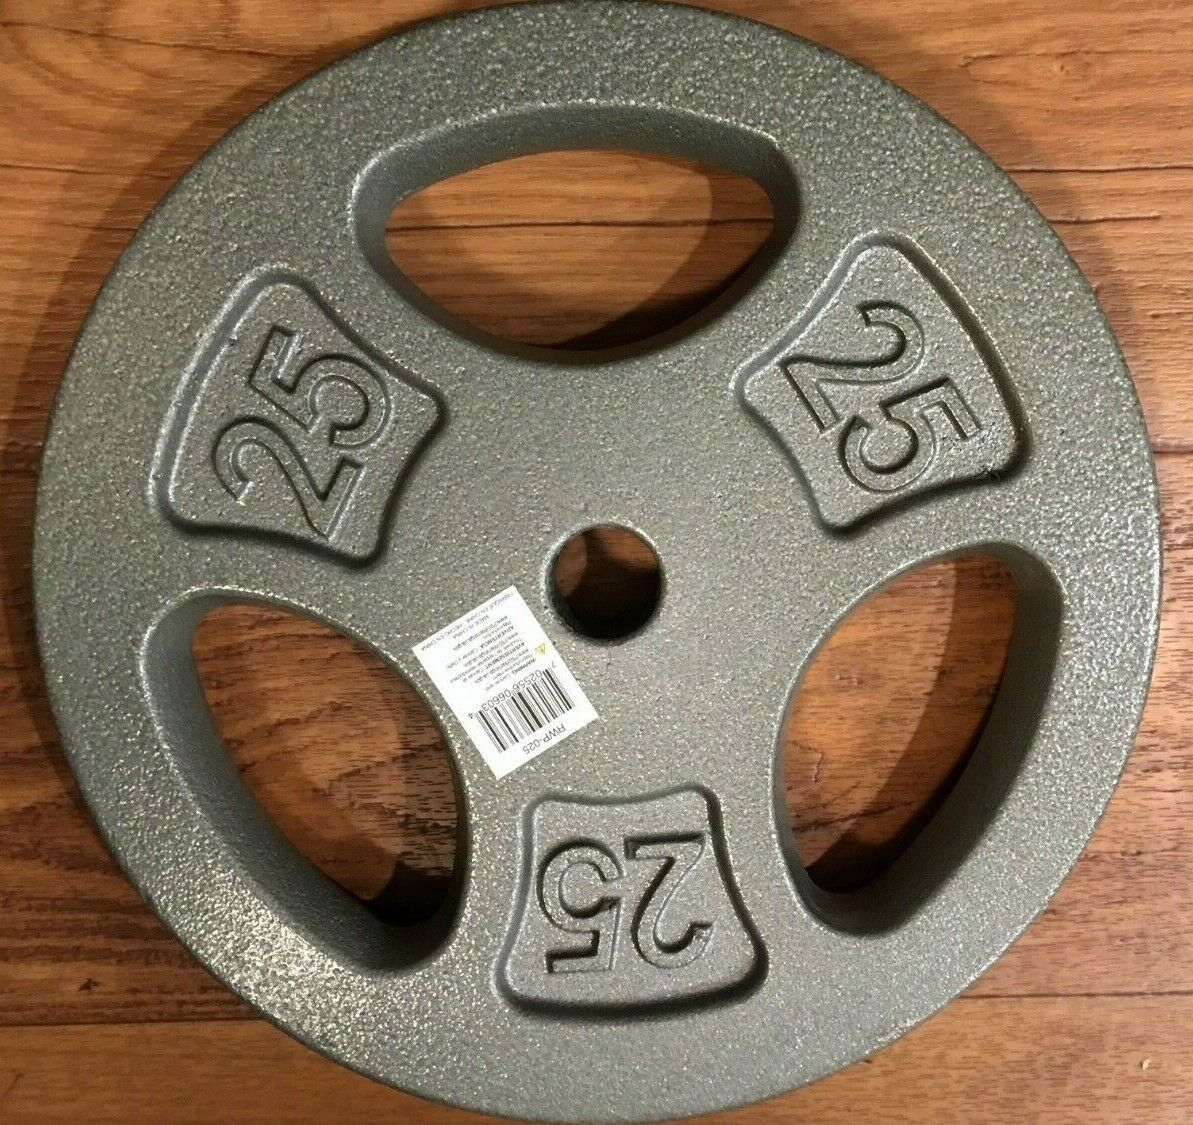 Single Weight 5, 10, or 25 CAP Cast Iron Standard 1″ Grip Plates Barbell Weights